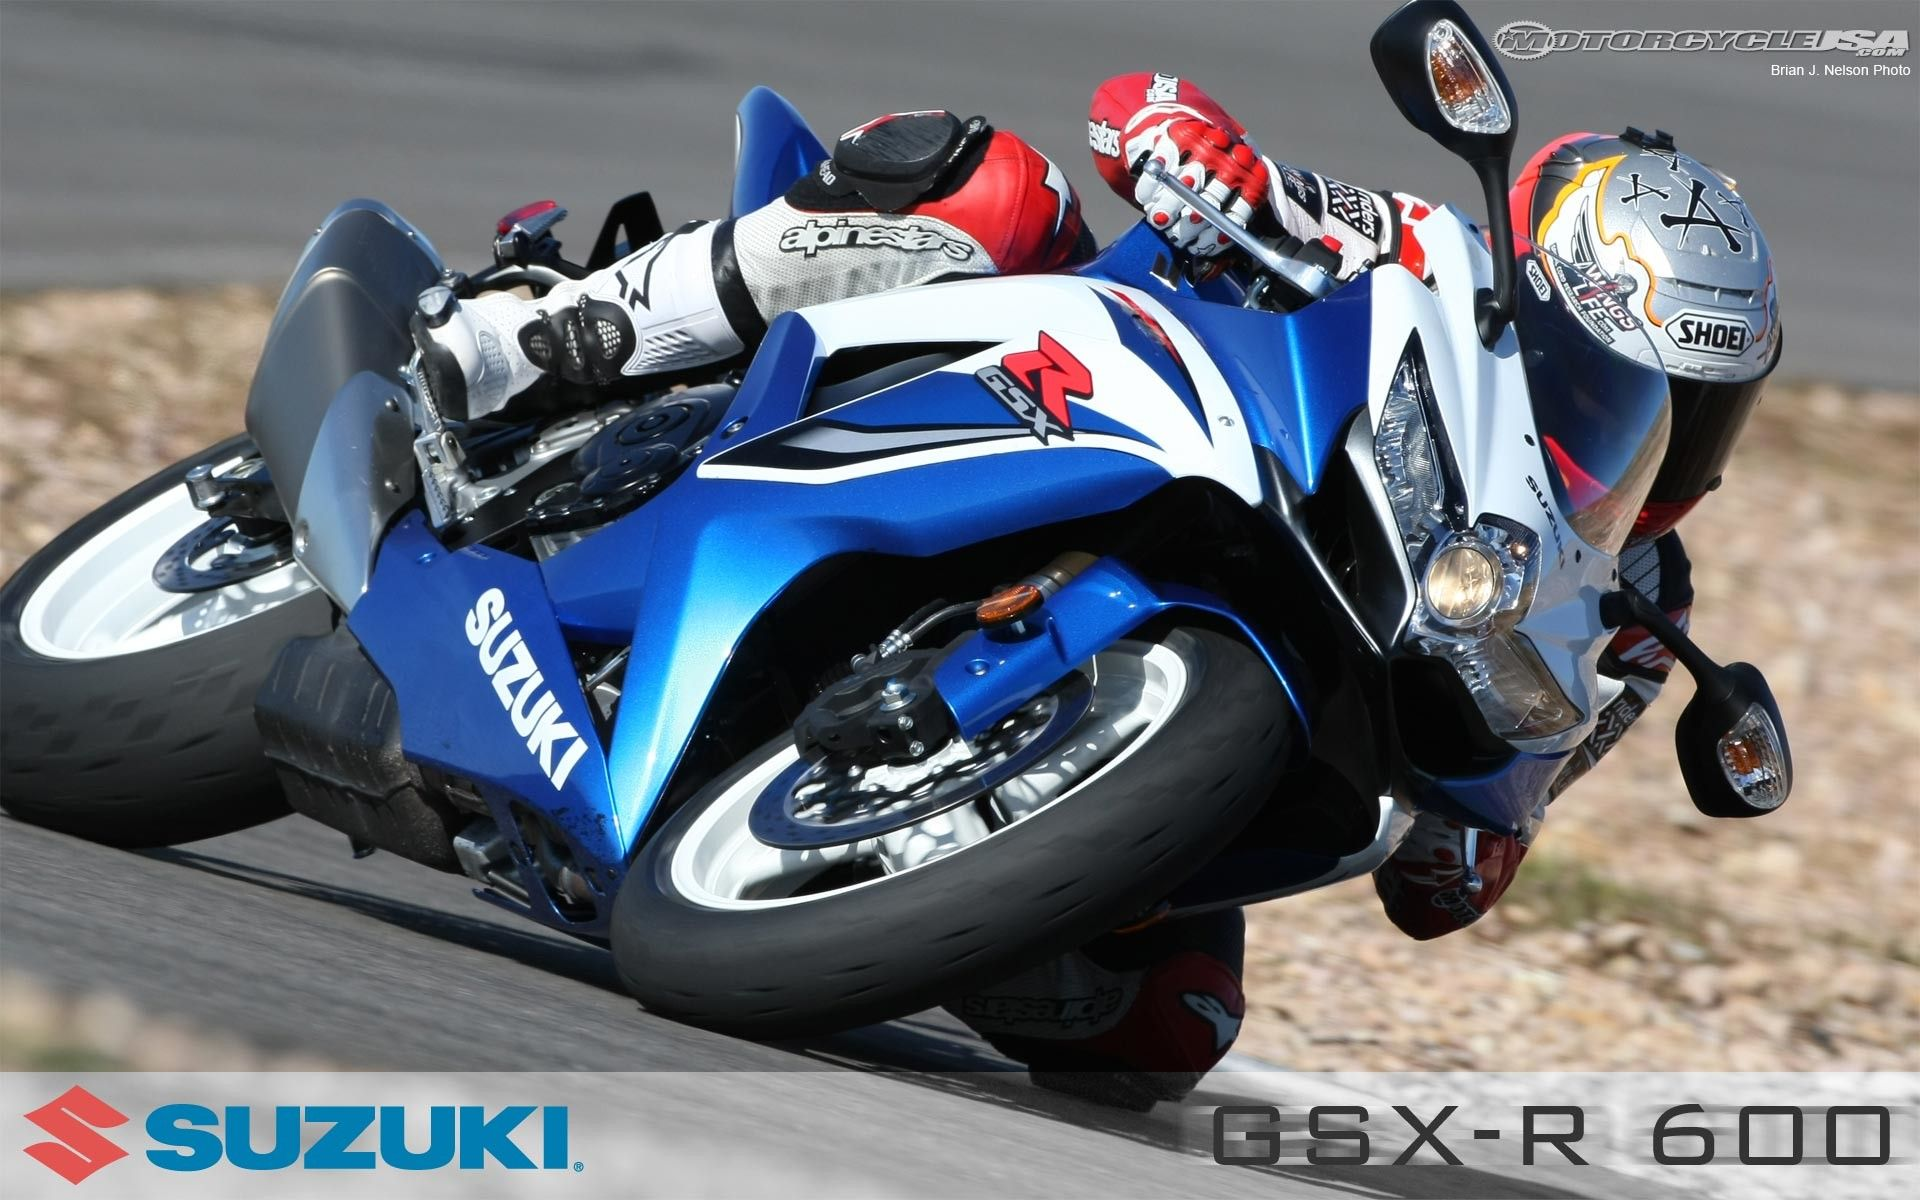 2009 Suzuki GSX-R600 Comparison on Countersteer